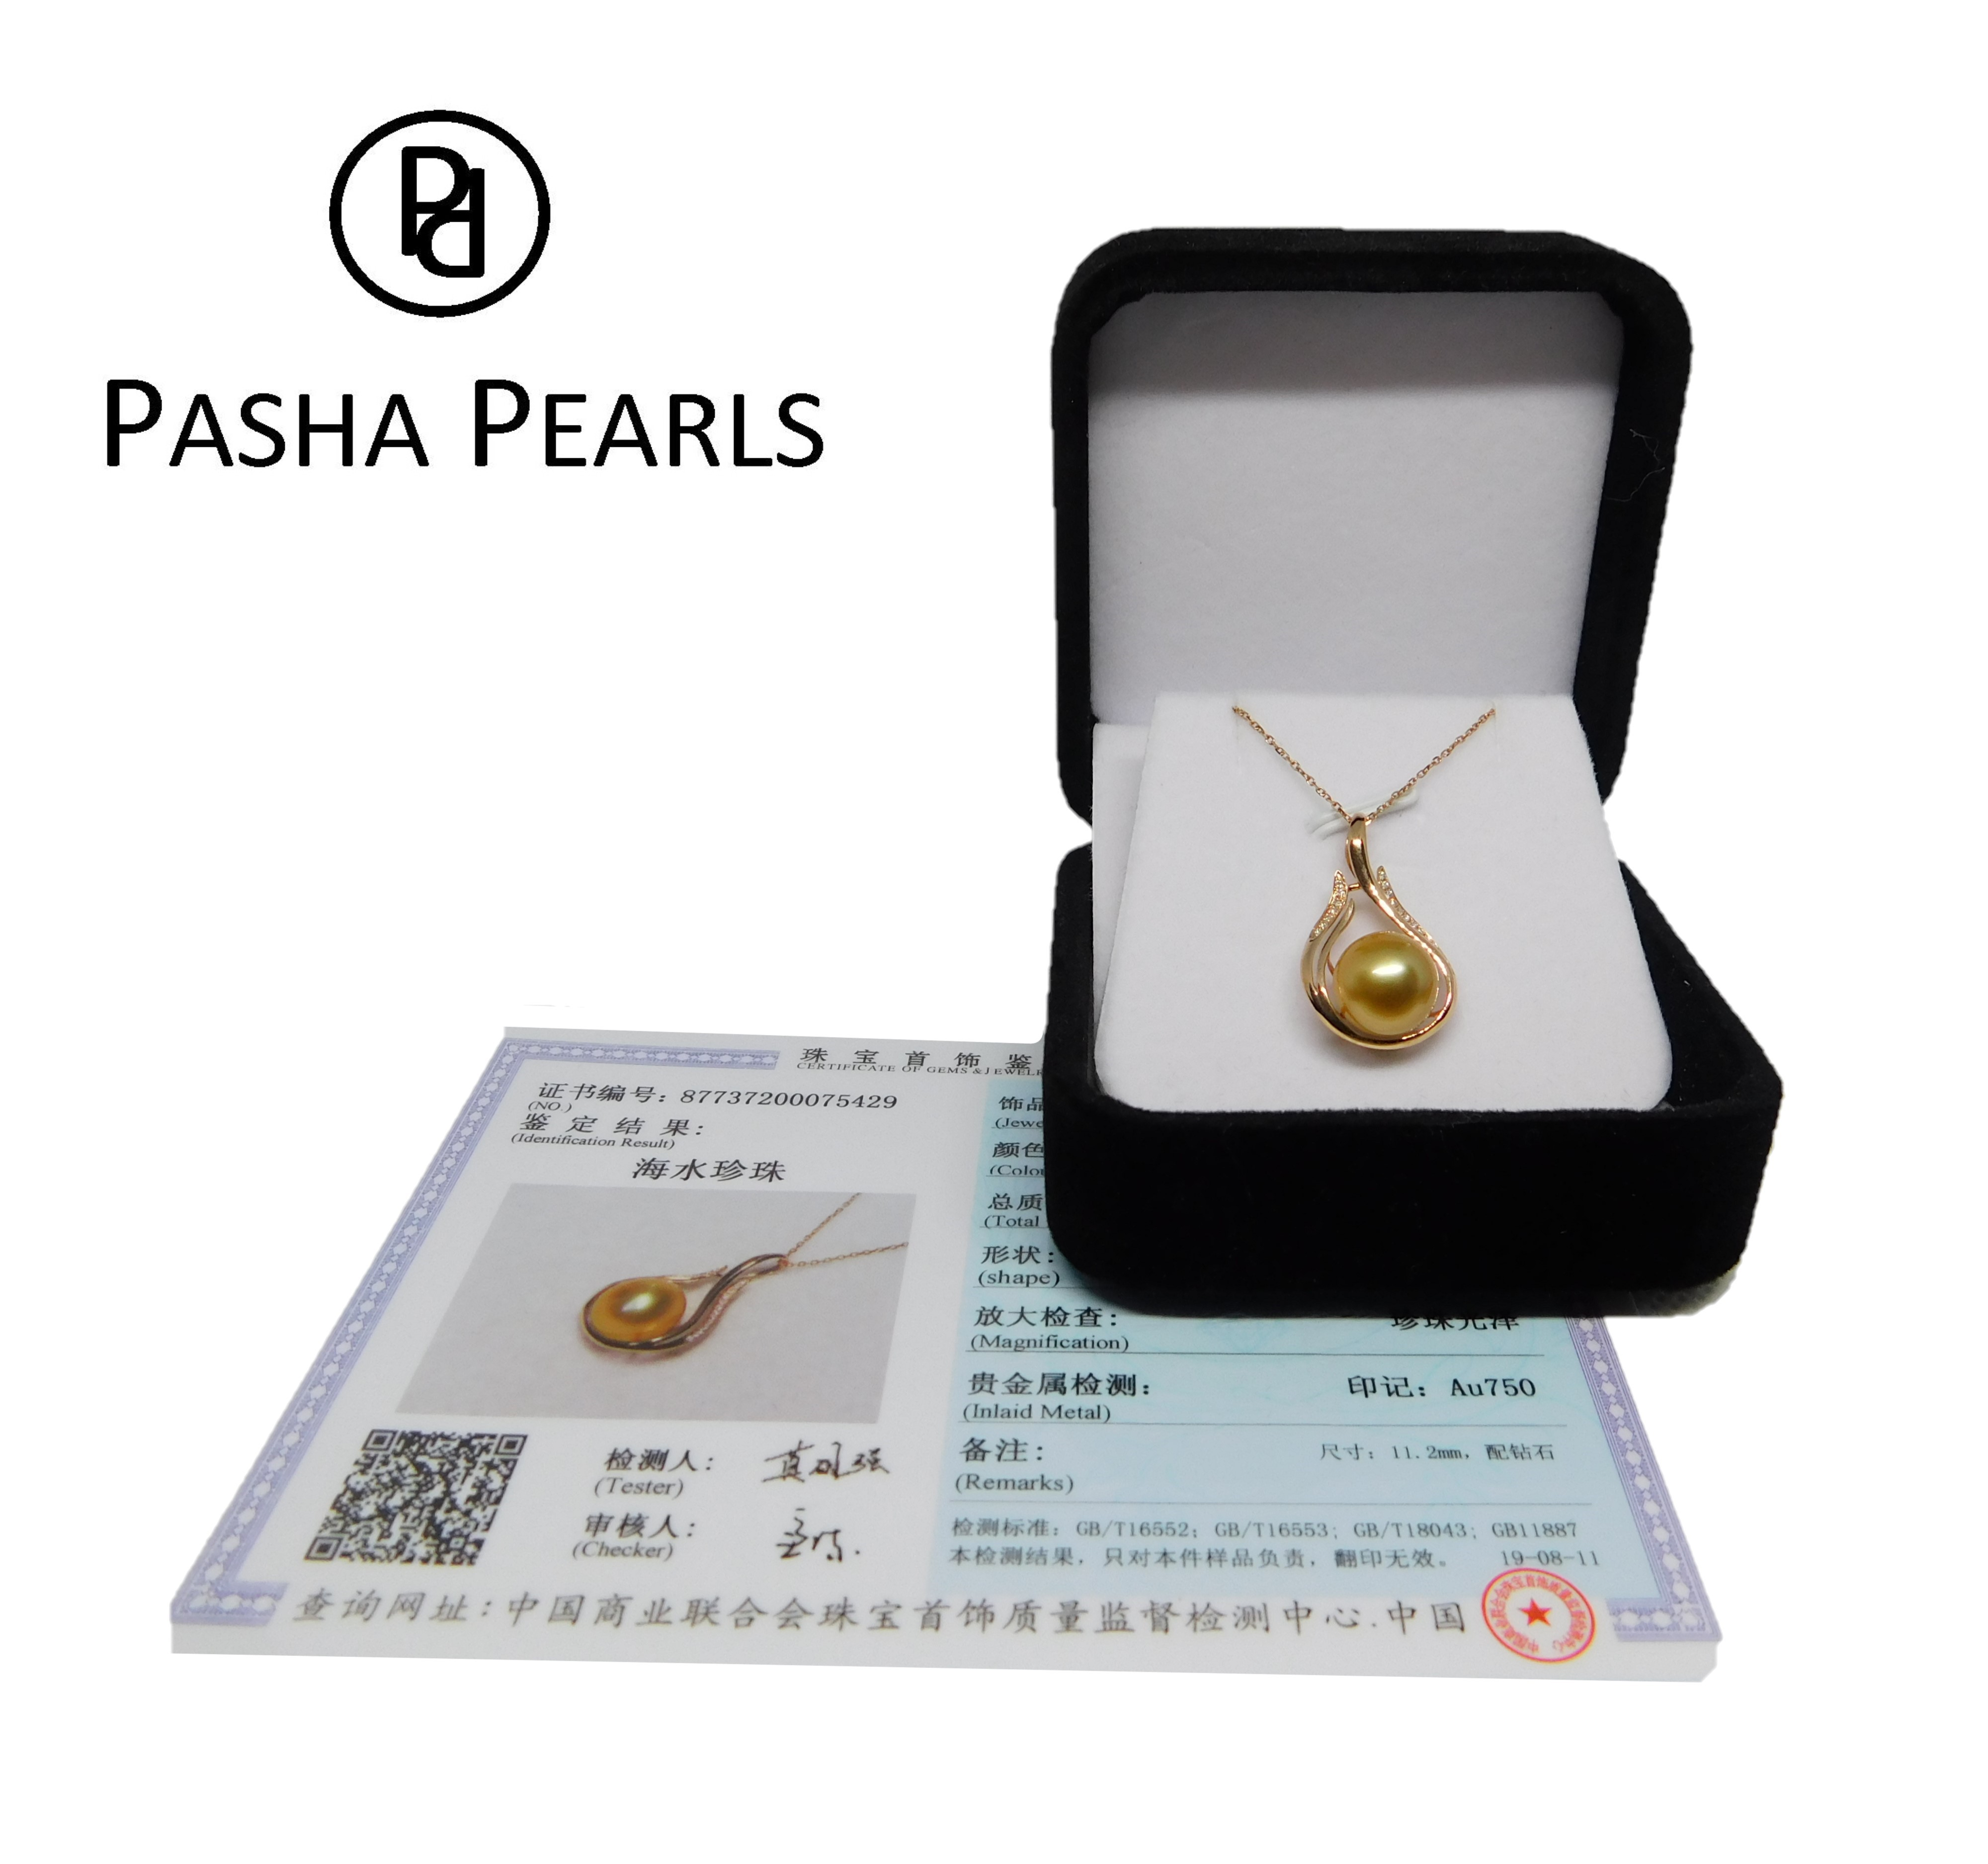 This exquisite pendant features an 12.0-13.0mm Gold South Sea Pearl, handpicked for its luminous luster